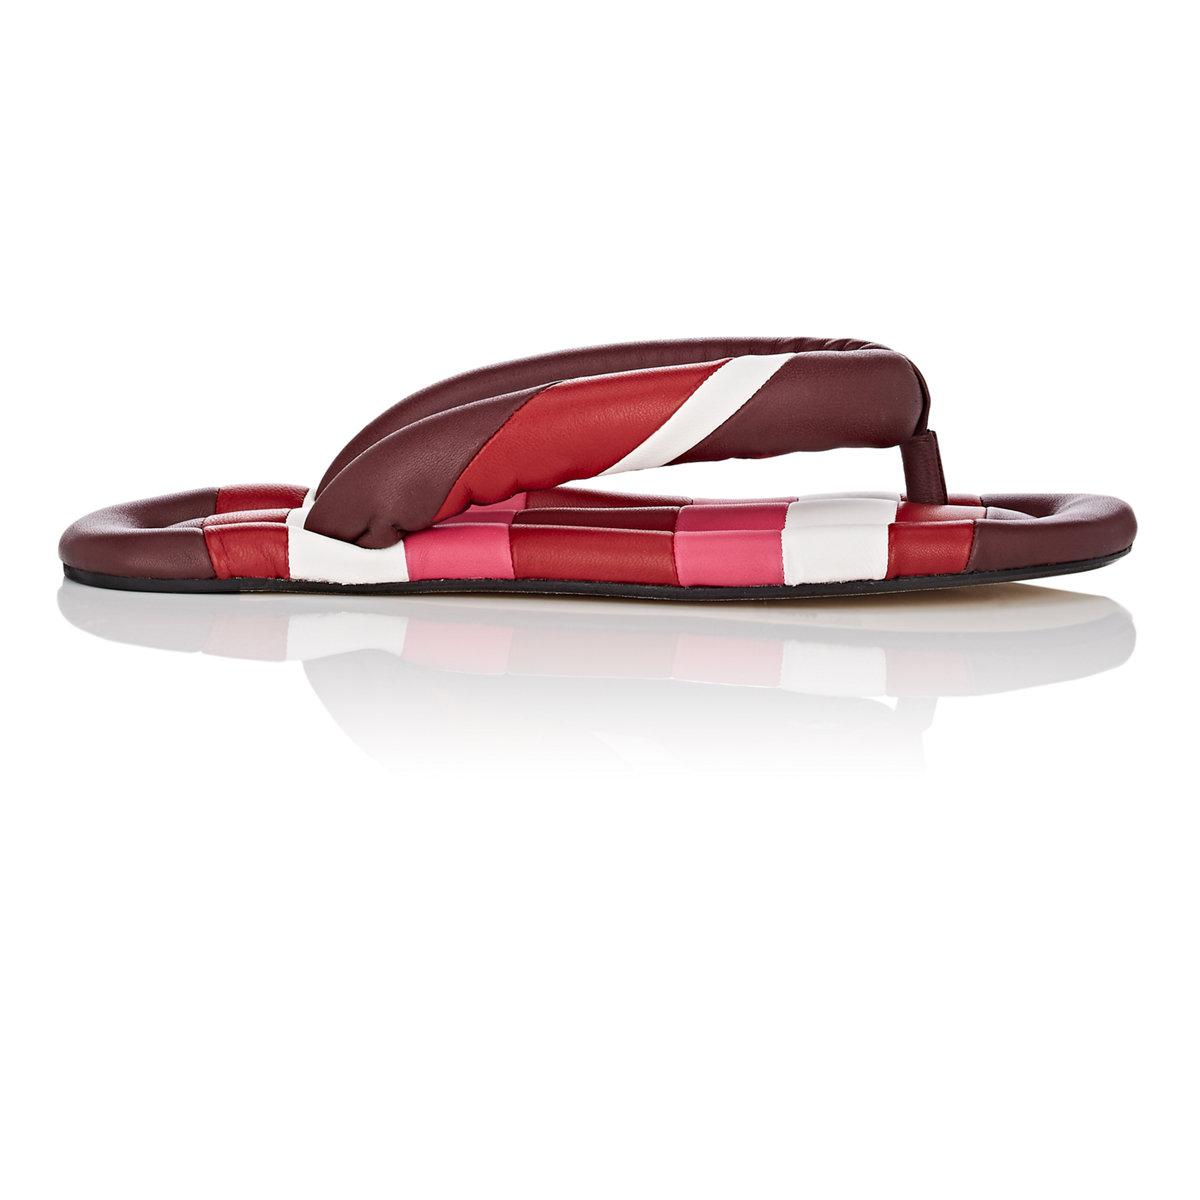 Isabel Marant Women's Eckily Flip Flops Perfect Sale Online Clearance With Paypal Cheap Online 100% Guaranteed Marketable GjL8G